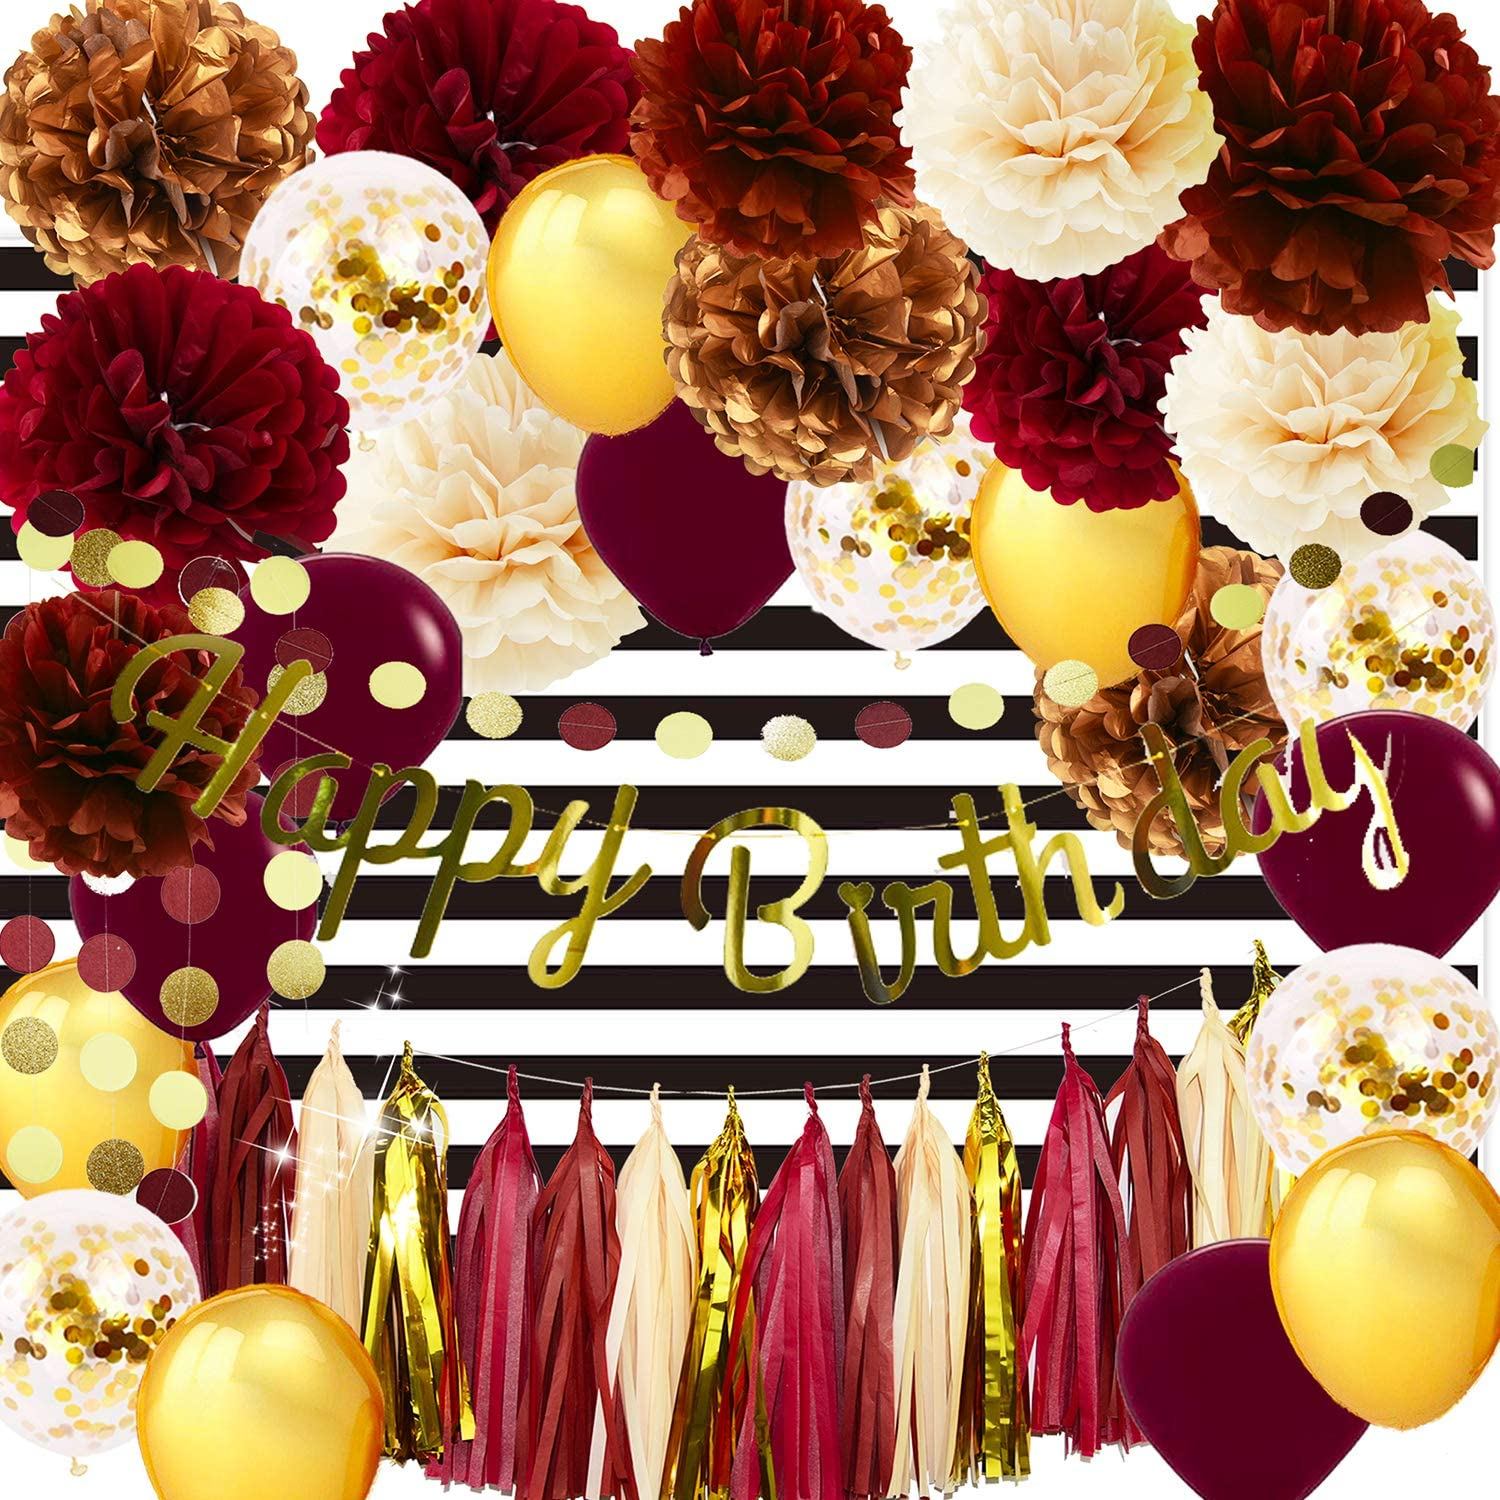 Fall Birthday Party Decorations/Burgundy Champagne Gold Birthday Decor Happy Birthday Letter Banner Maroon Gold Balloons White Black Strip Photo Backdrop Women Burgundy Birthday Party Decorations